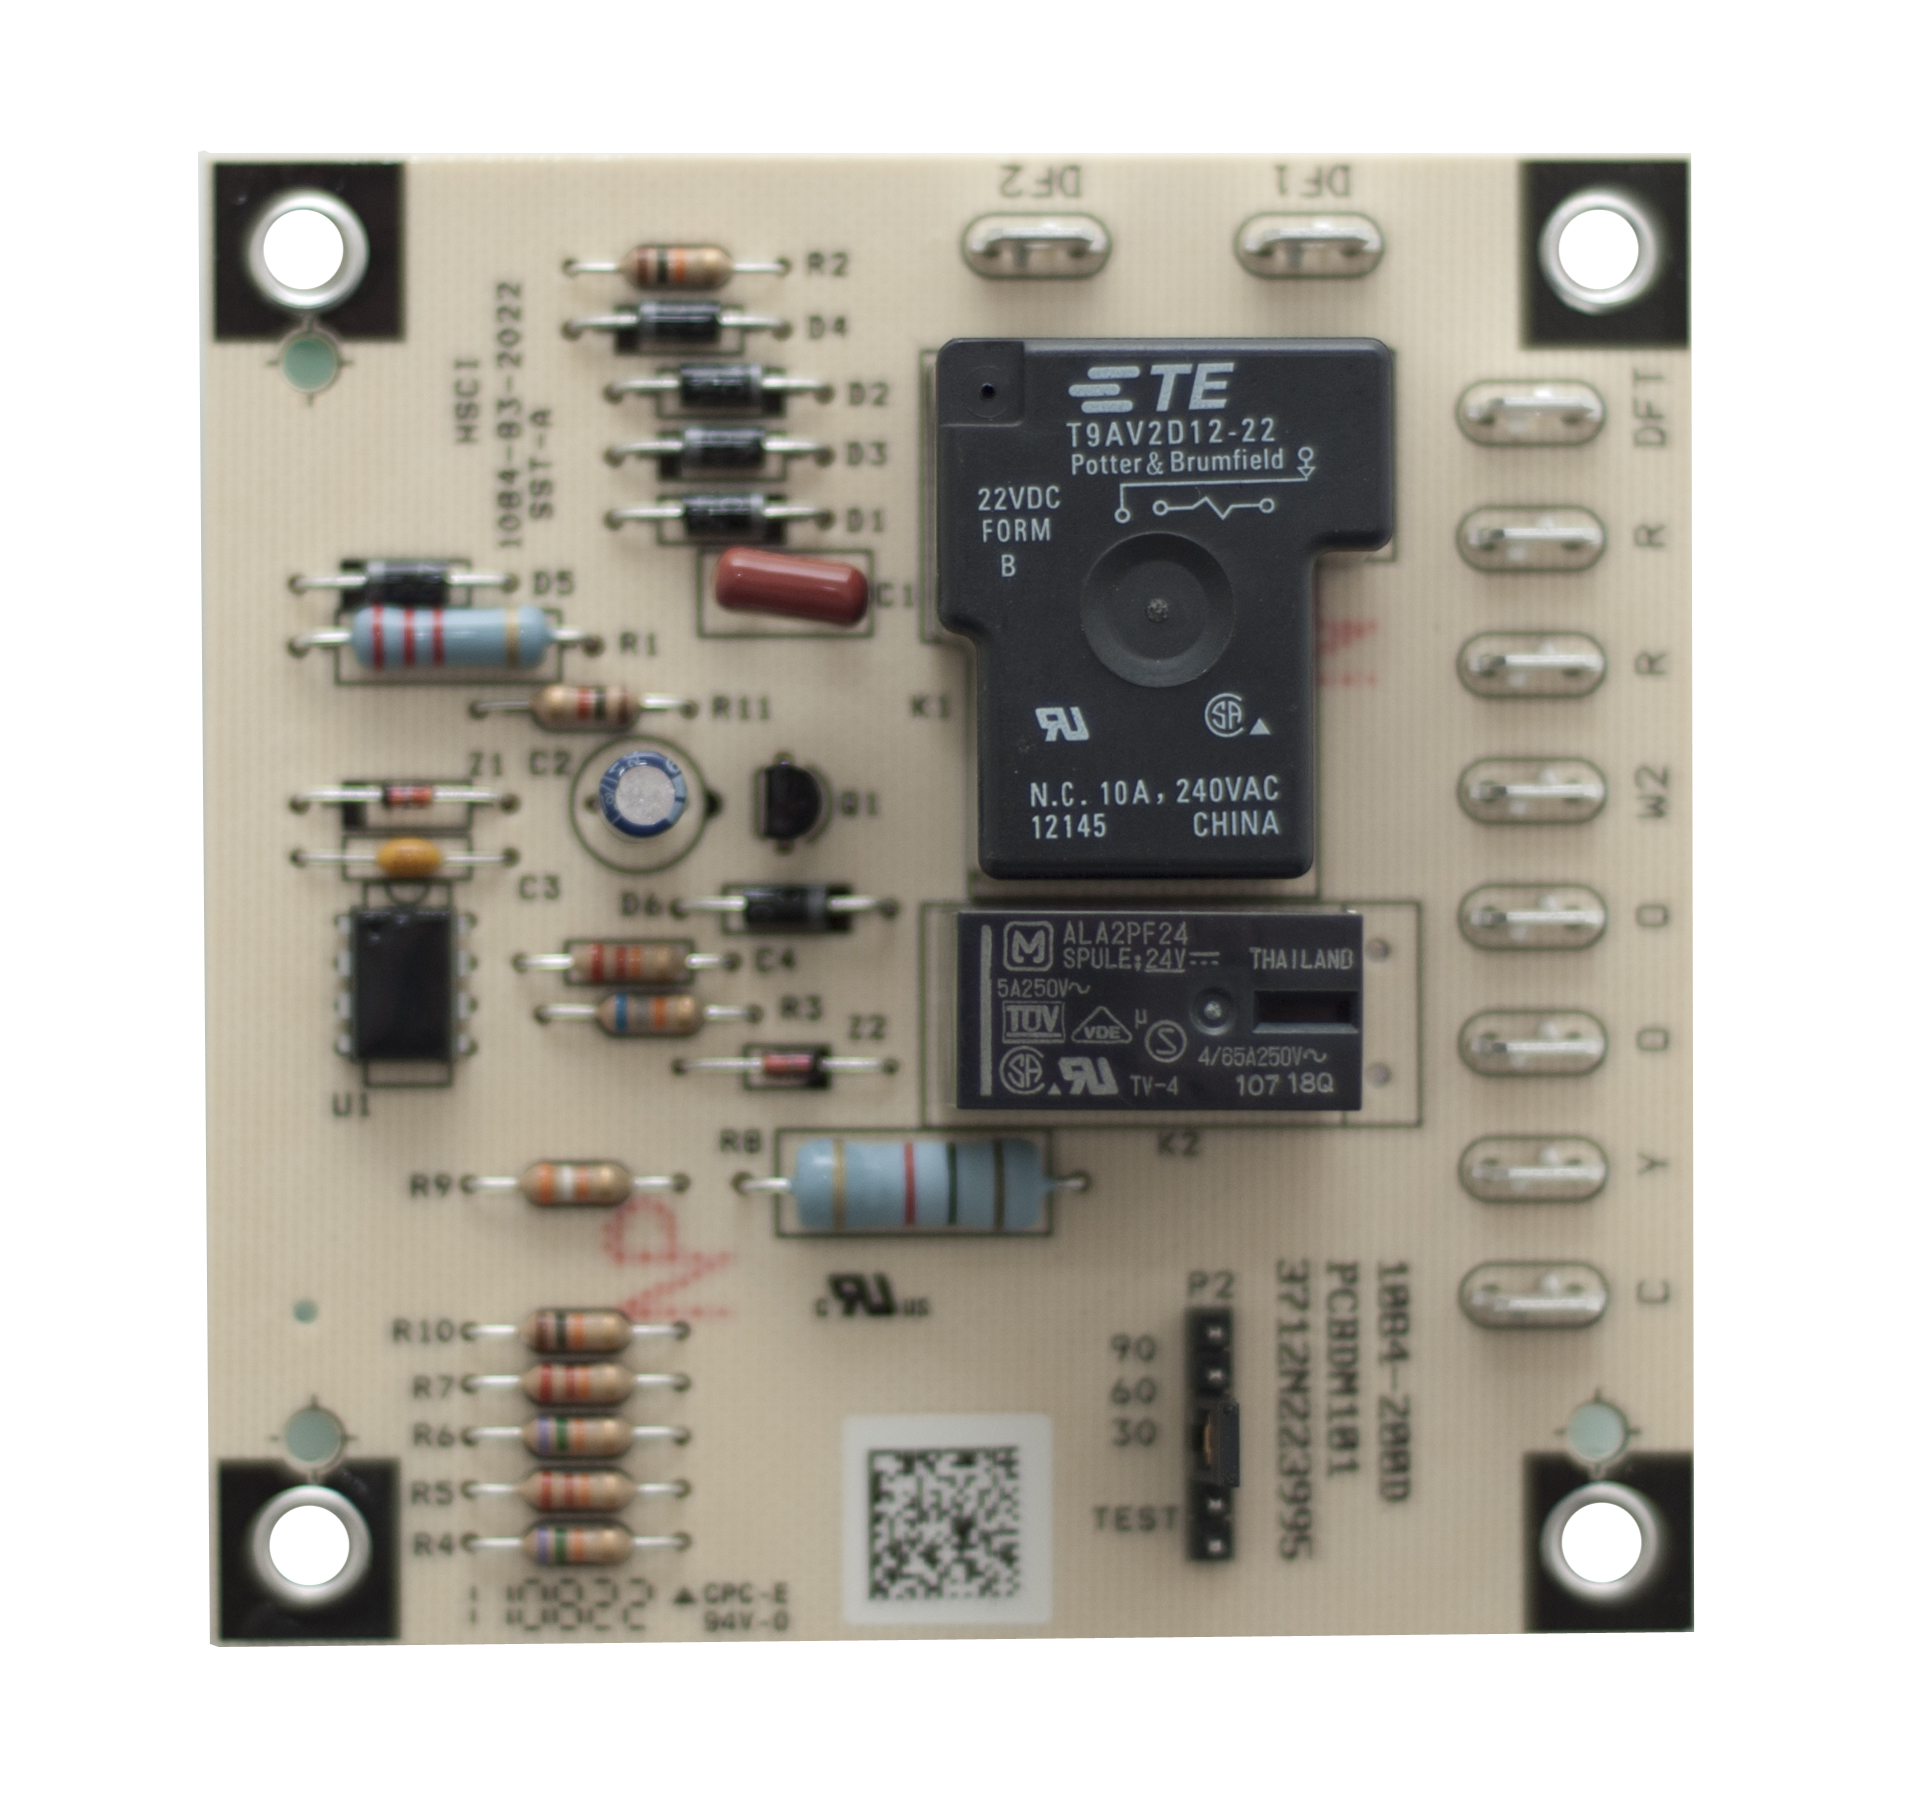 goodman furnace parts. this pcbdm101s defrost control board is a guaranteed genuine goodman oem replacement circuit for several goodman, amana, and janitrol units. furnace parts e